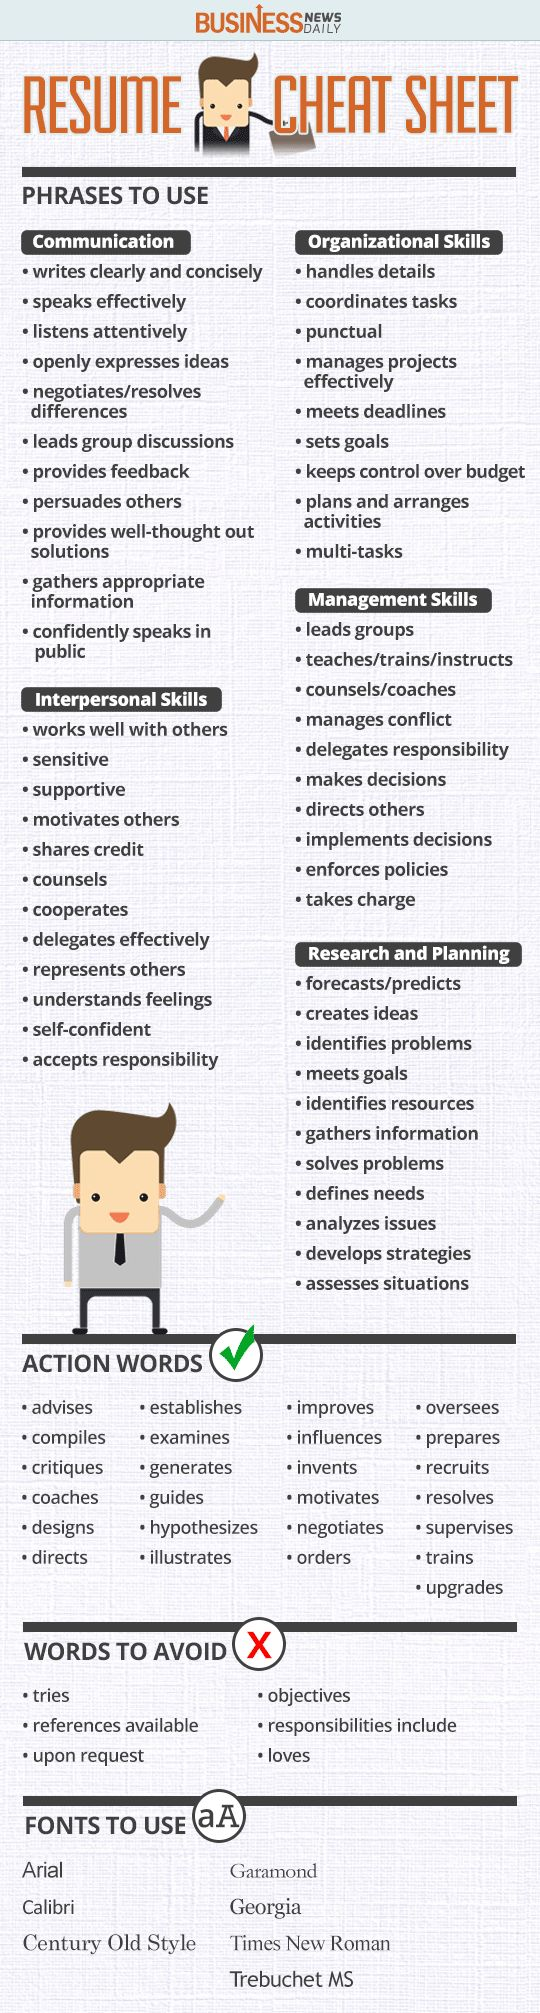 Opposenewapstandardsus  Marvellous  Ideas About Resume On Pinterest  Cv Format Resume  With Exquisite Resume Cheat Sheet Infographic Andrews Almost Done With A Complete Unit On Employment Which With Astounding Good Resume Summary Also How To Build A Good Resume In Addition Landscaping Resume And Example Objective For Resume As Well As A Good Objective For A Resume Additionally Educational Resume From Pinterestcom With Opposenewapstandardsus  Exquisite  Ideas About Resume On Pinterest  Cv Format Resume  With Astounding Resume Cheat Sheet Infographic Andrews Almost Done With A Complete Unit On Employment Which And Marvellous Good Resume Summary Also How To Build A Good Resume In Addition Landscaping Resume From Pinterestcom